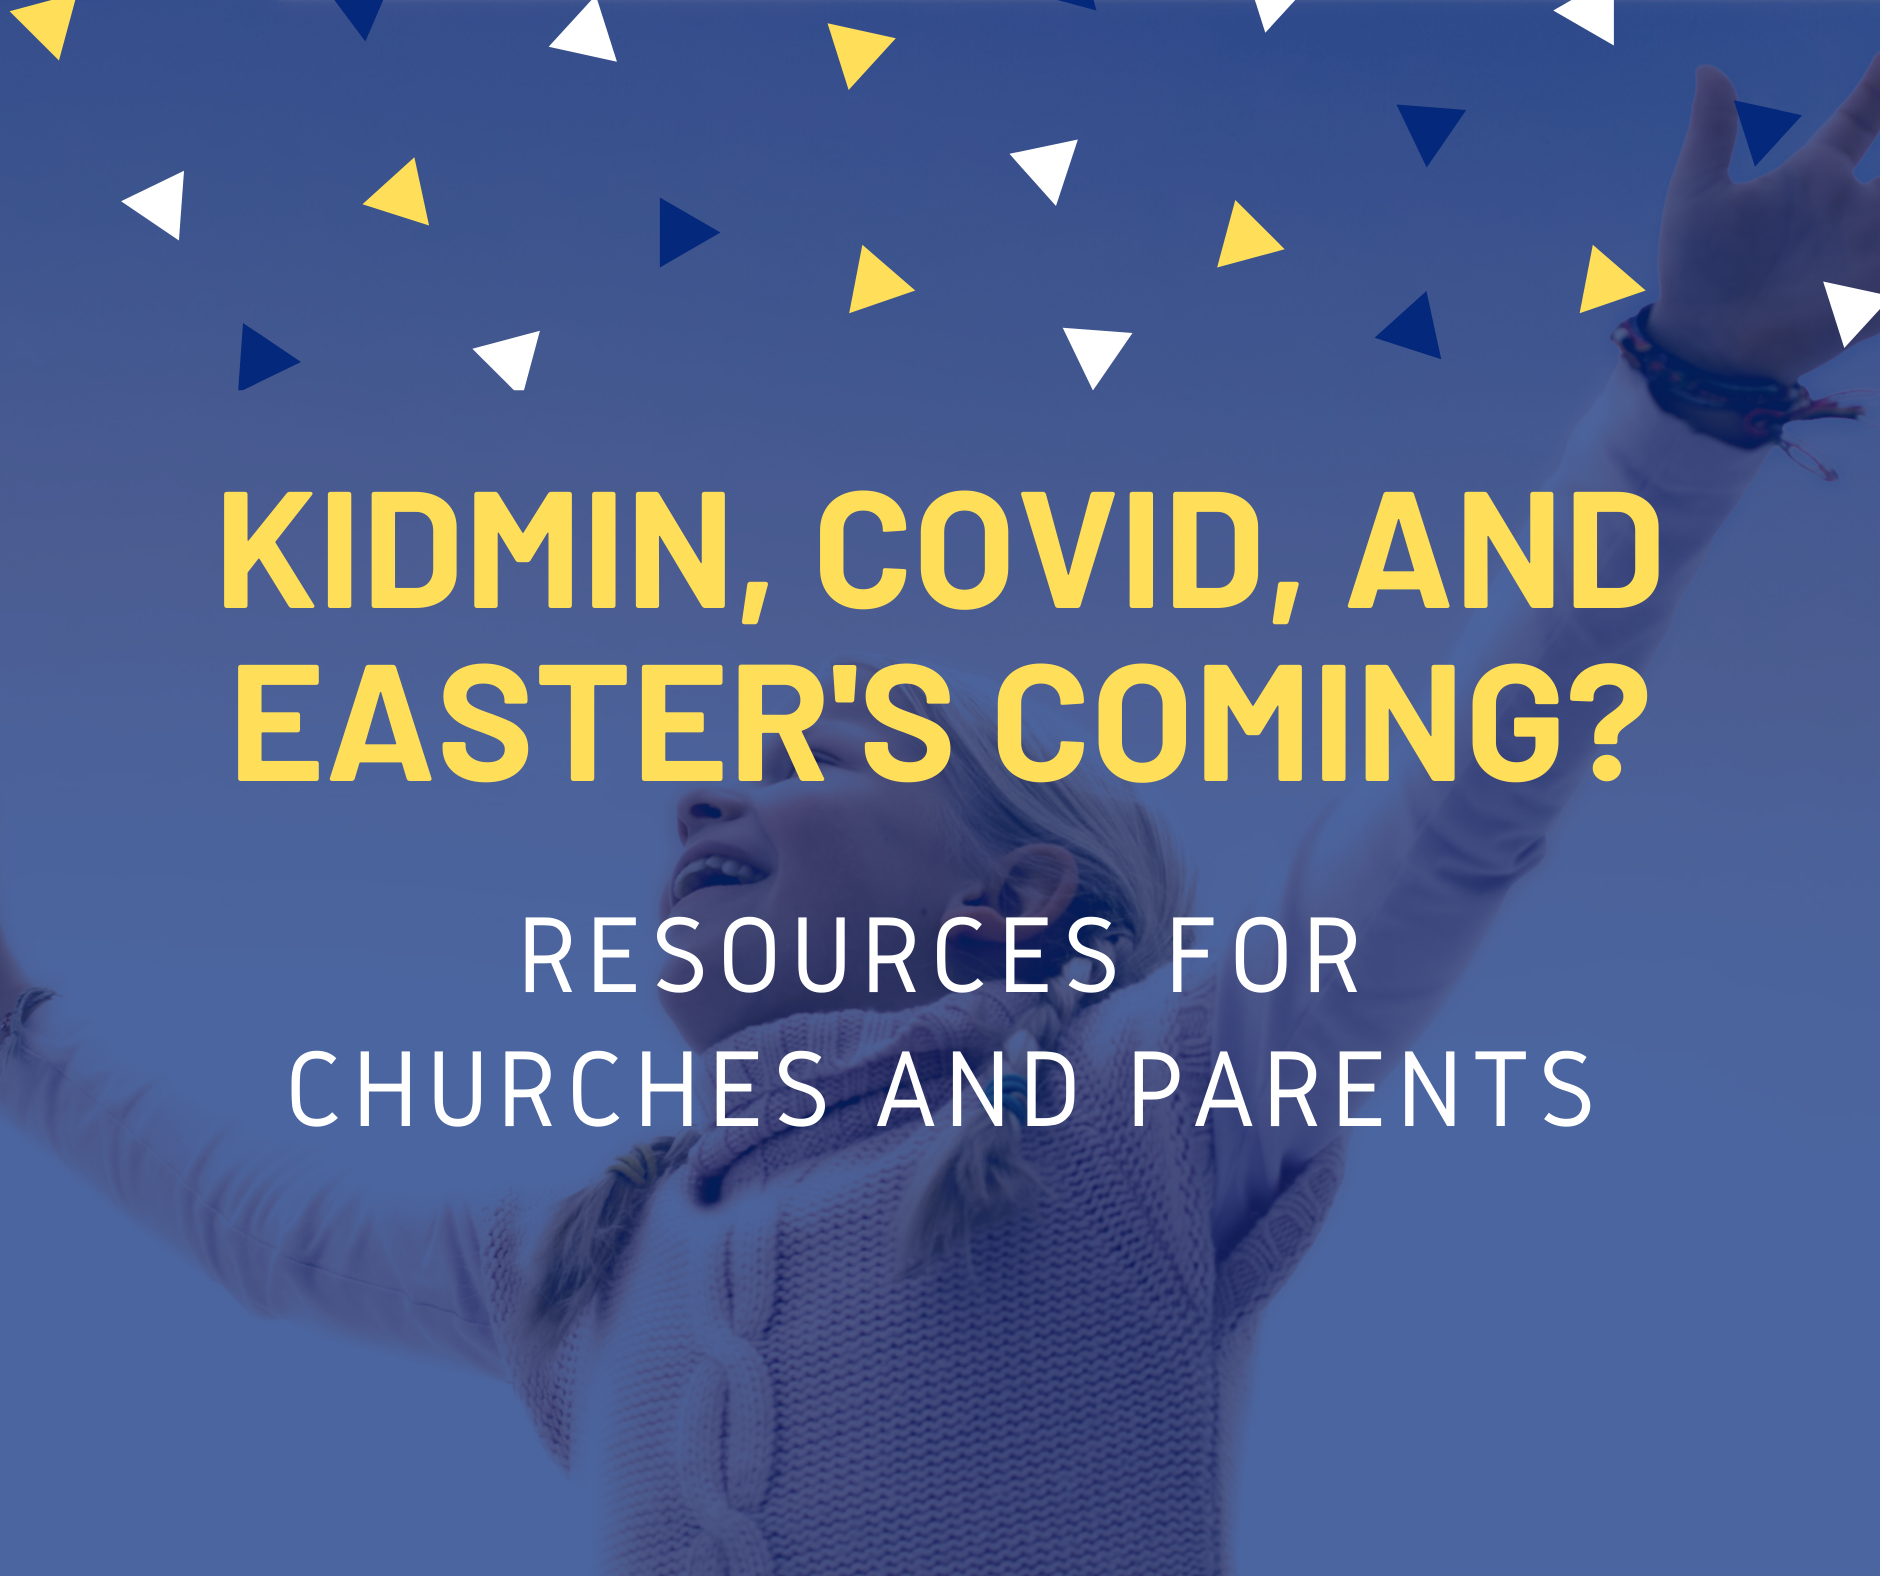 Kidmin Coronavirus Resources